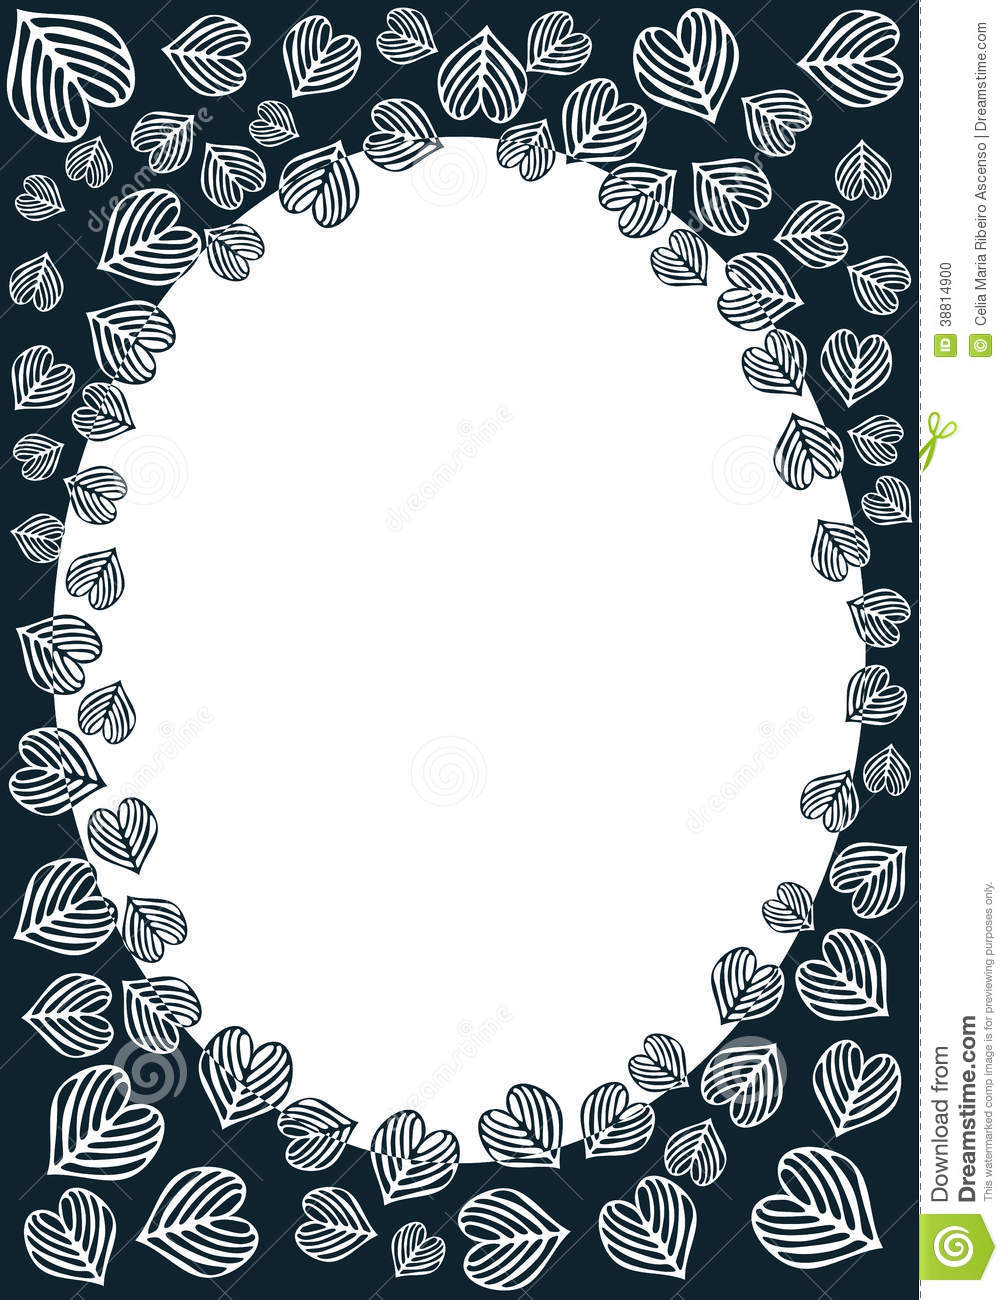 Heart Leaves Border Frame Illustration 38814900 - Megapixl